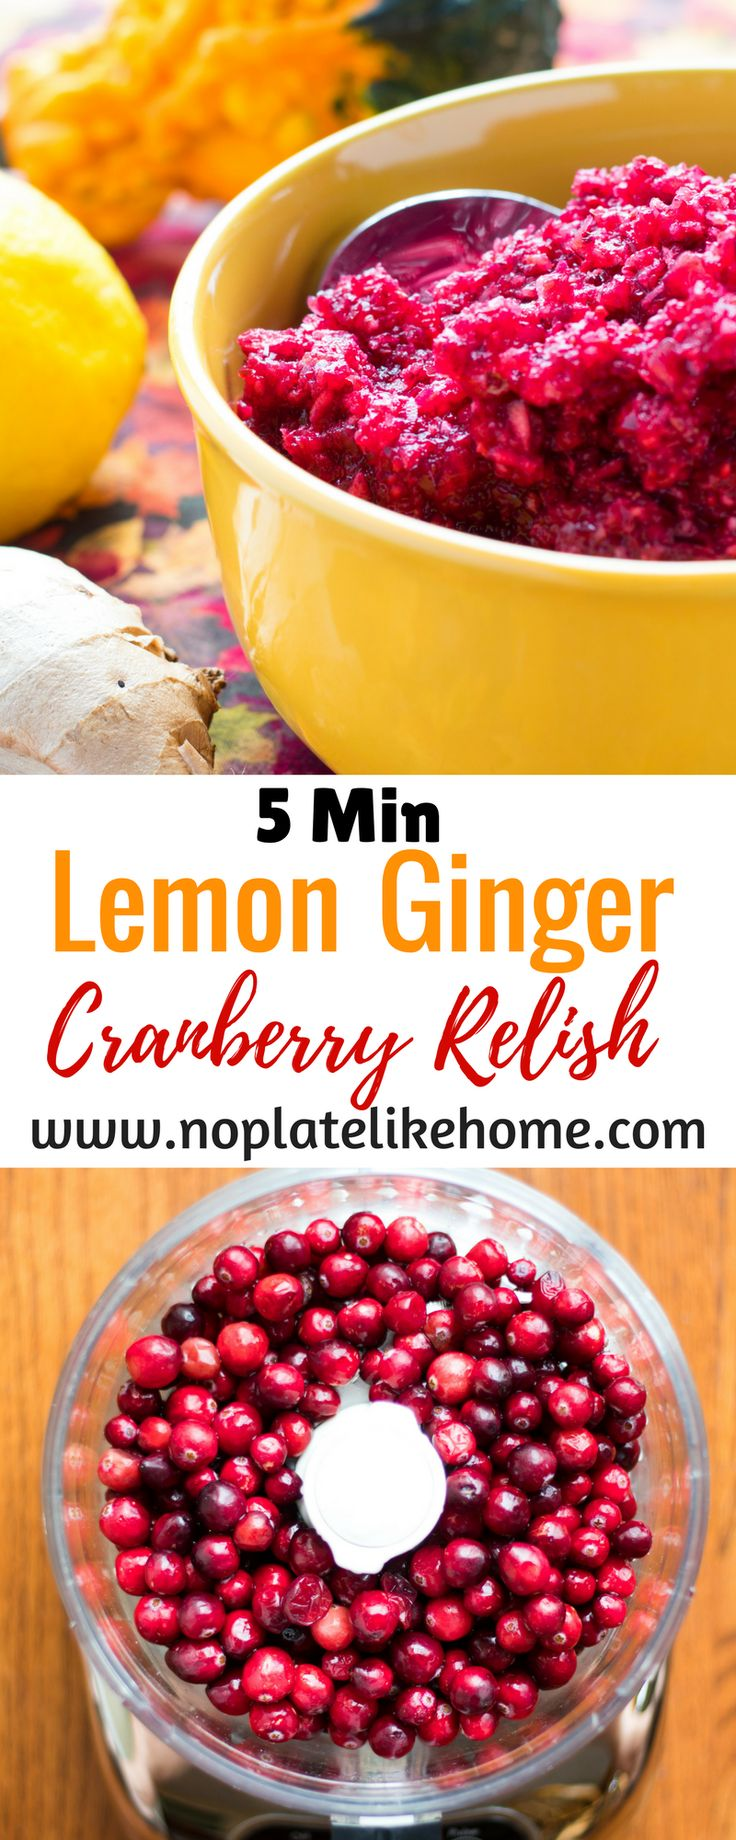 Lemon Ginger Cranberry relish is tart but, not too sweet and tastes great with Thanksgiving turkey. It is made with fresh cranberries, pineapple juice, grated ginger, lemon zest, cloves and sugar. It only takes minutes to make with a food processor and freezes well. Why buy canned cranberry sauce? Pin for later.